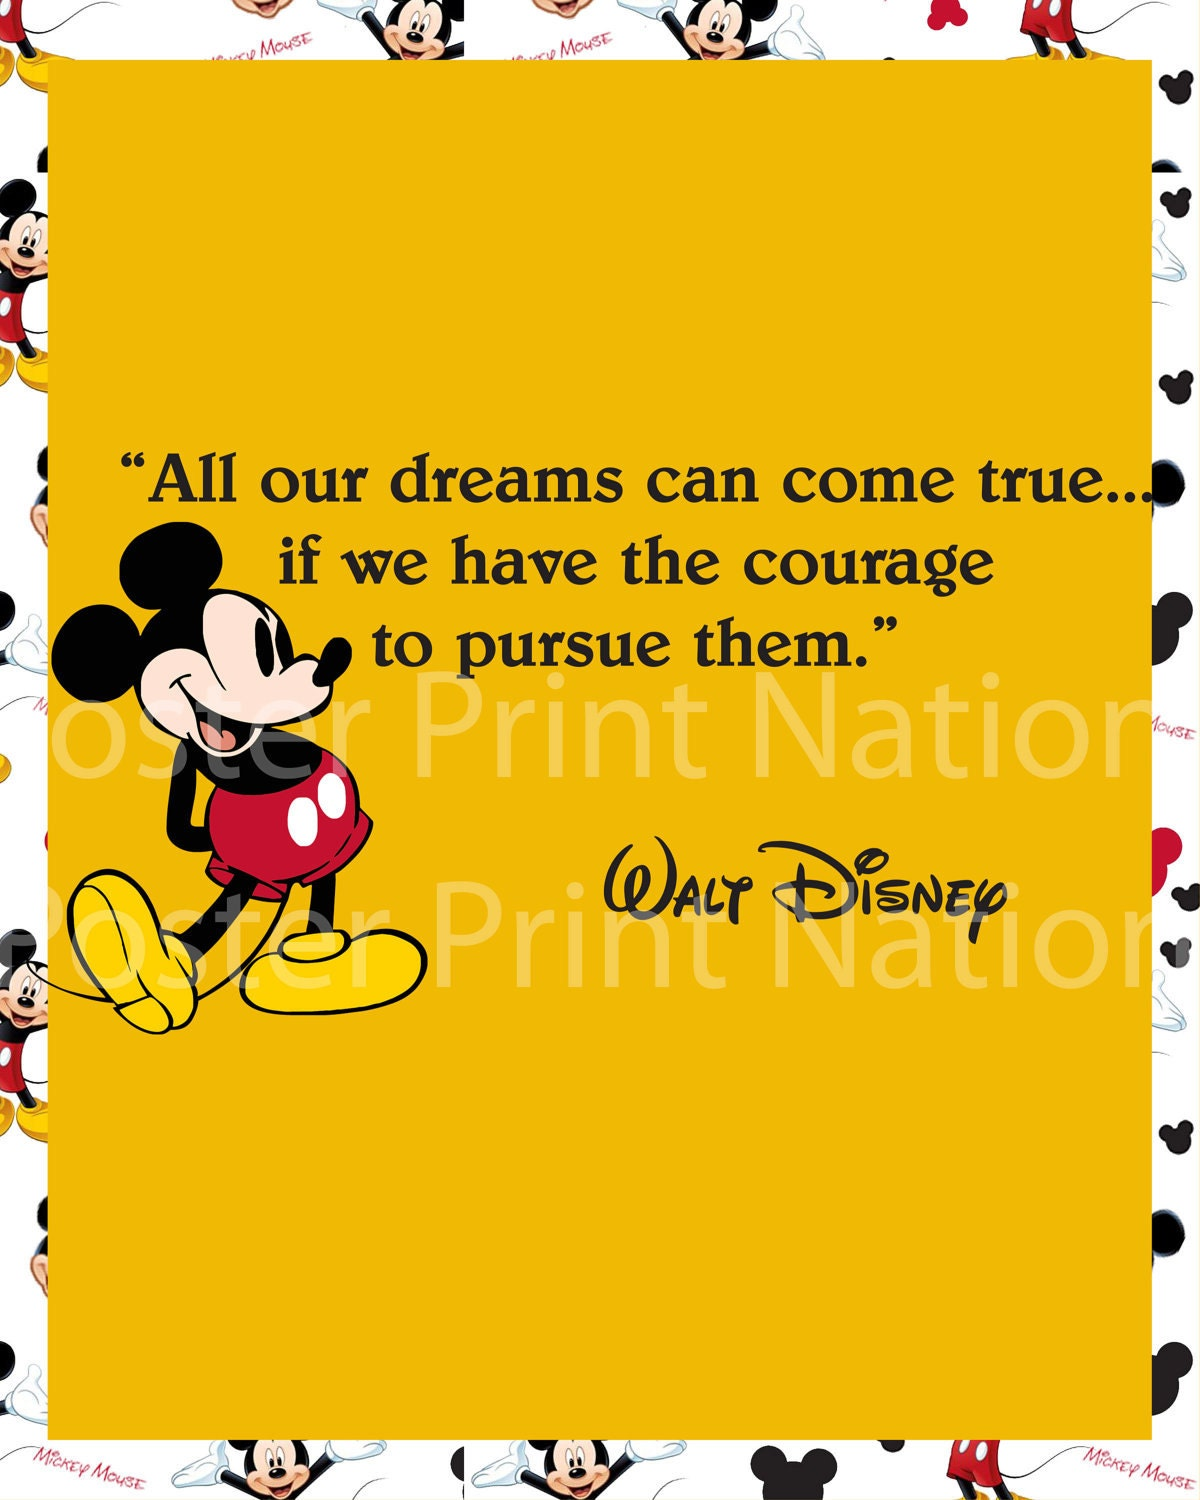 Disney Quote About Friendship Fascinating Disney Quote On Friendship Cute Disney Quotes About Friendship